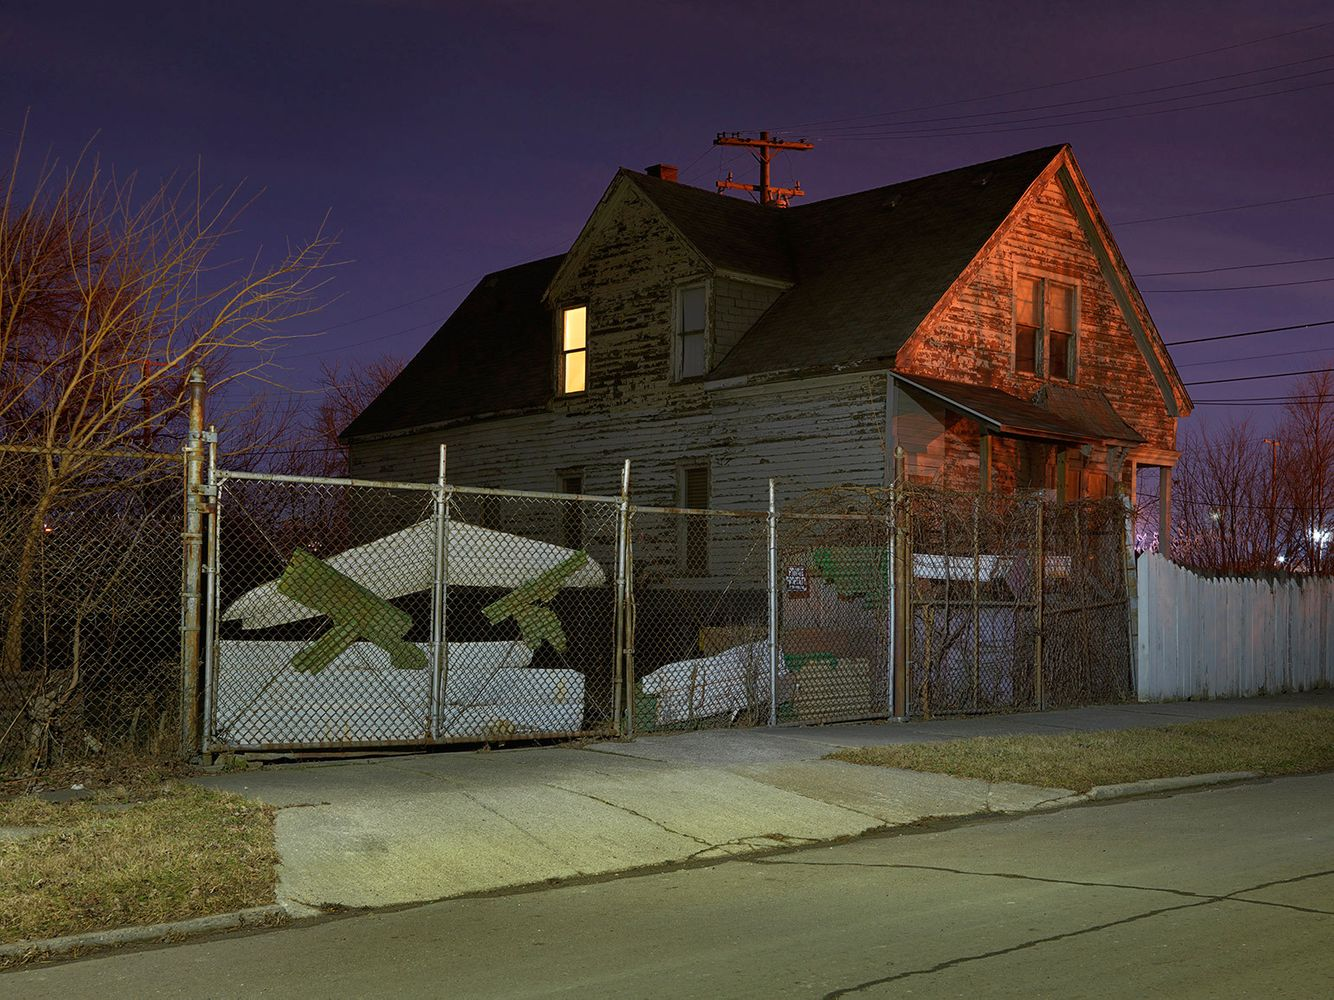 House with Light On, Poletown, Eastside, Detroit 2016